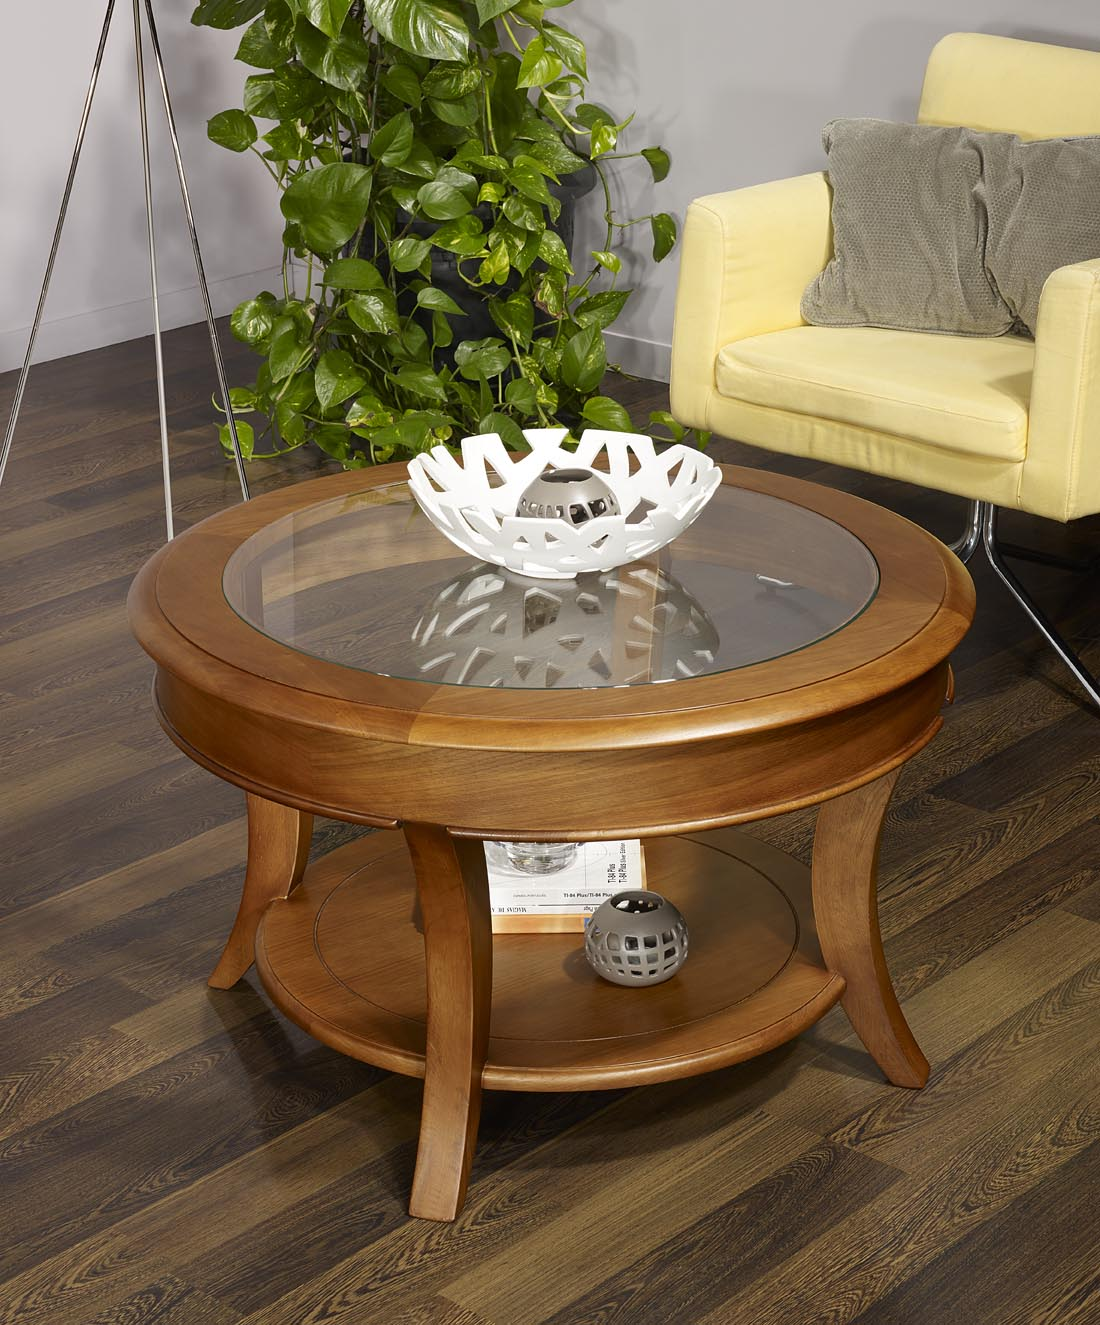 Table Basse Ronde Bois Massif Table Basse Rectangulaire Bois